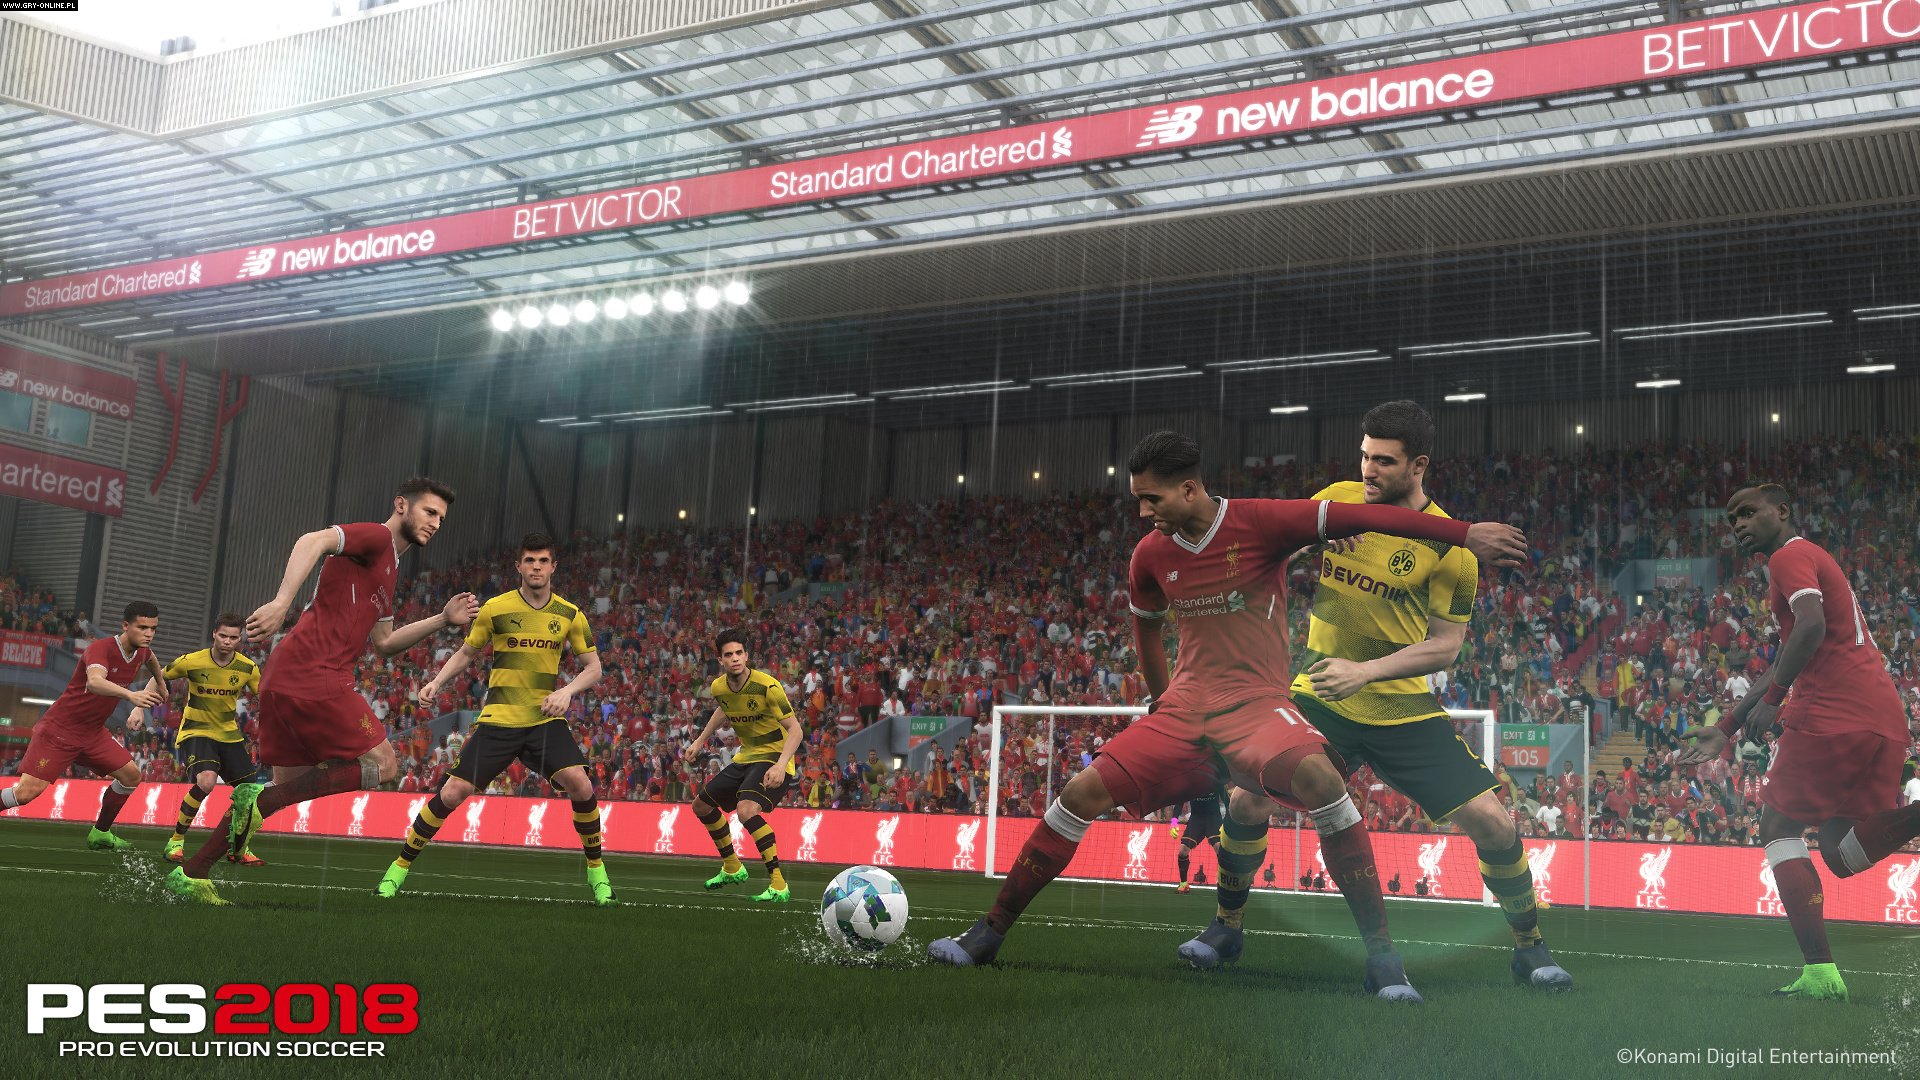 Pro Evolution Soccer 2018 PC, PS4, XONE Games Image 18/25, Konami